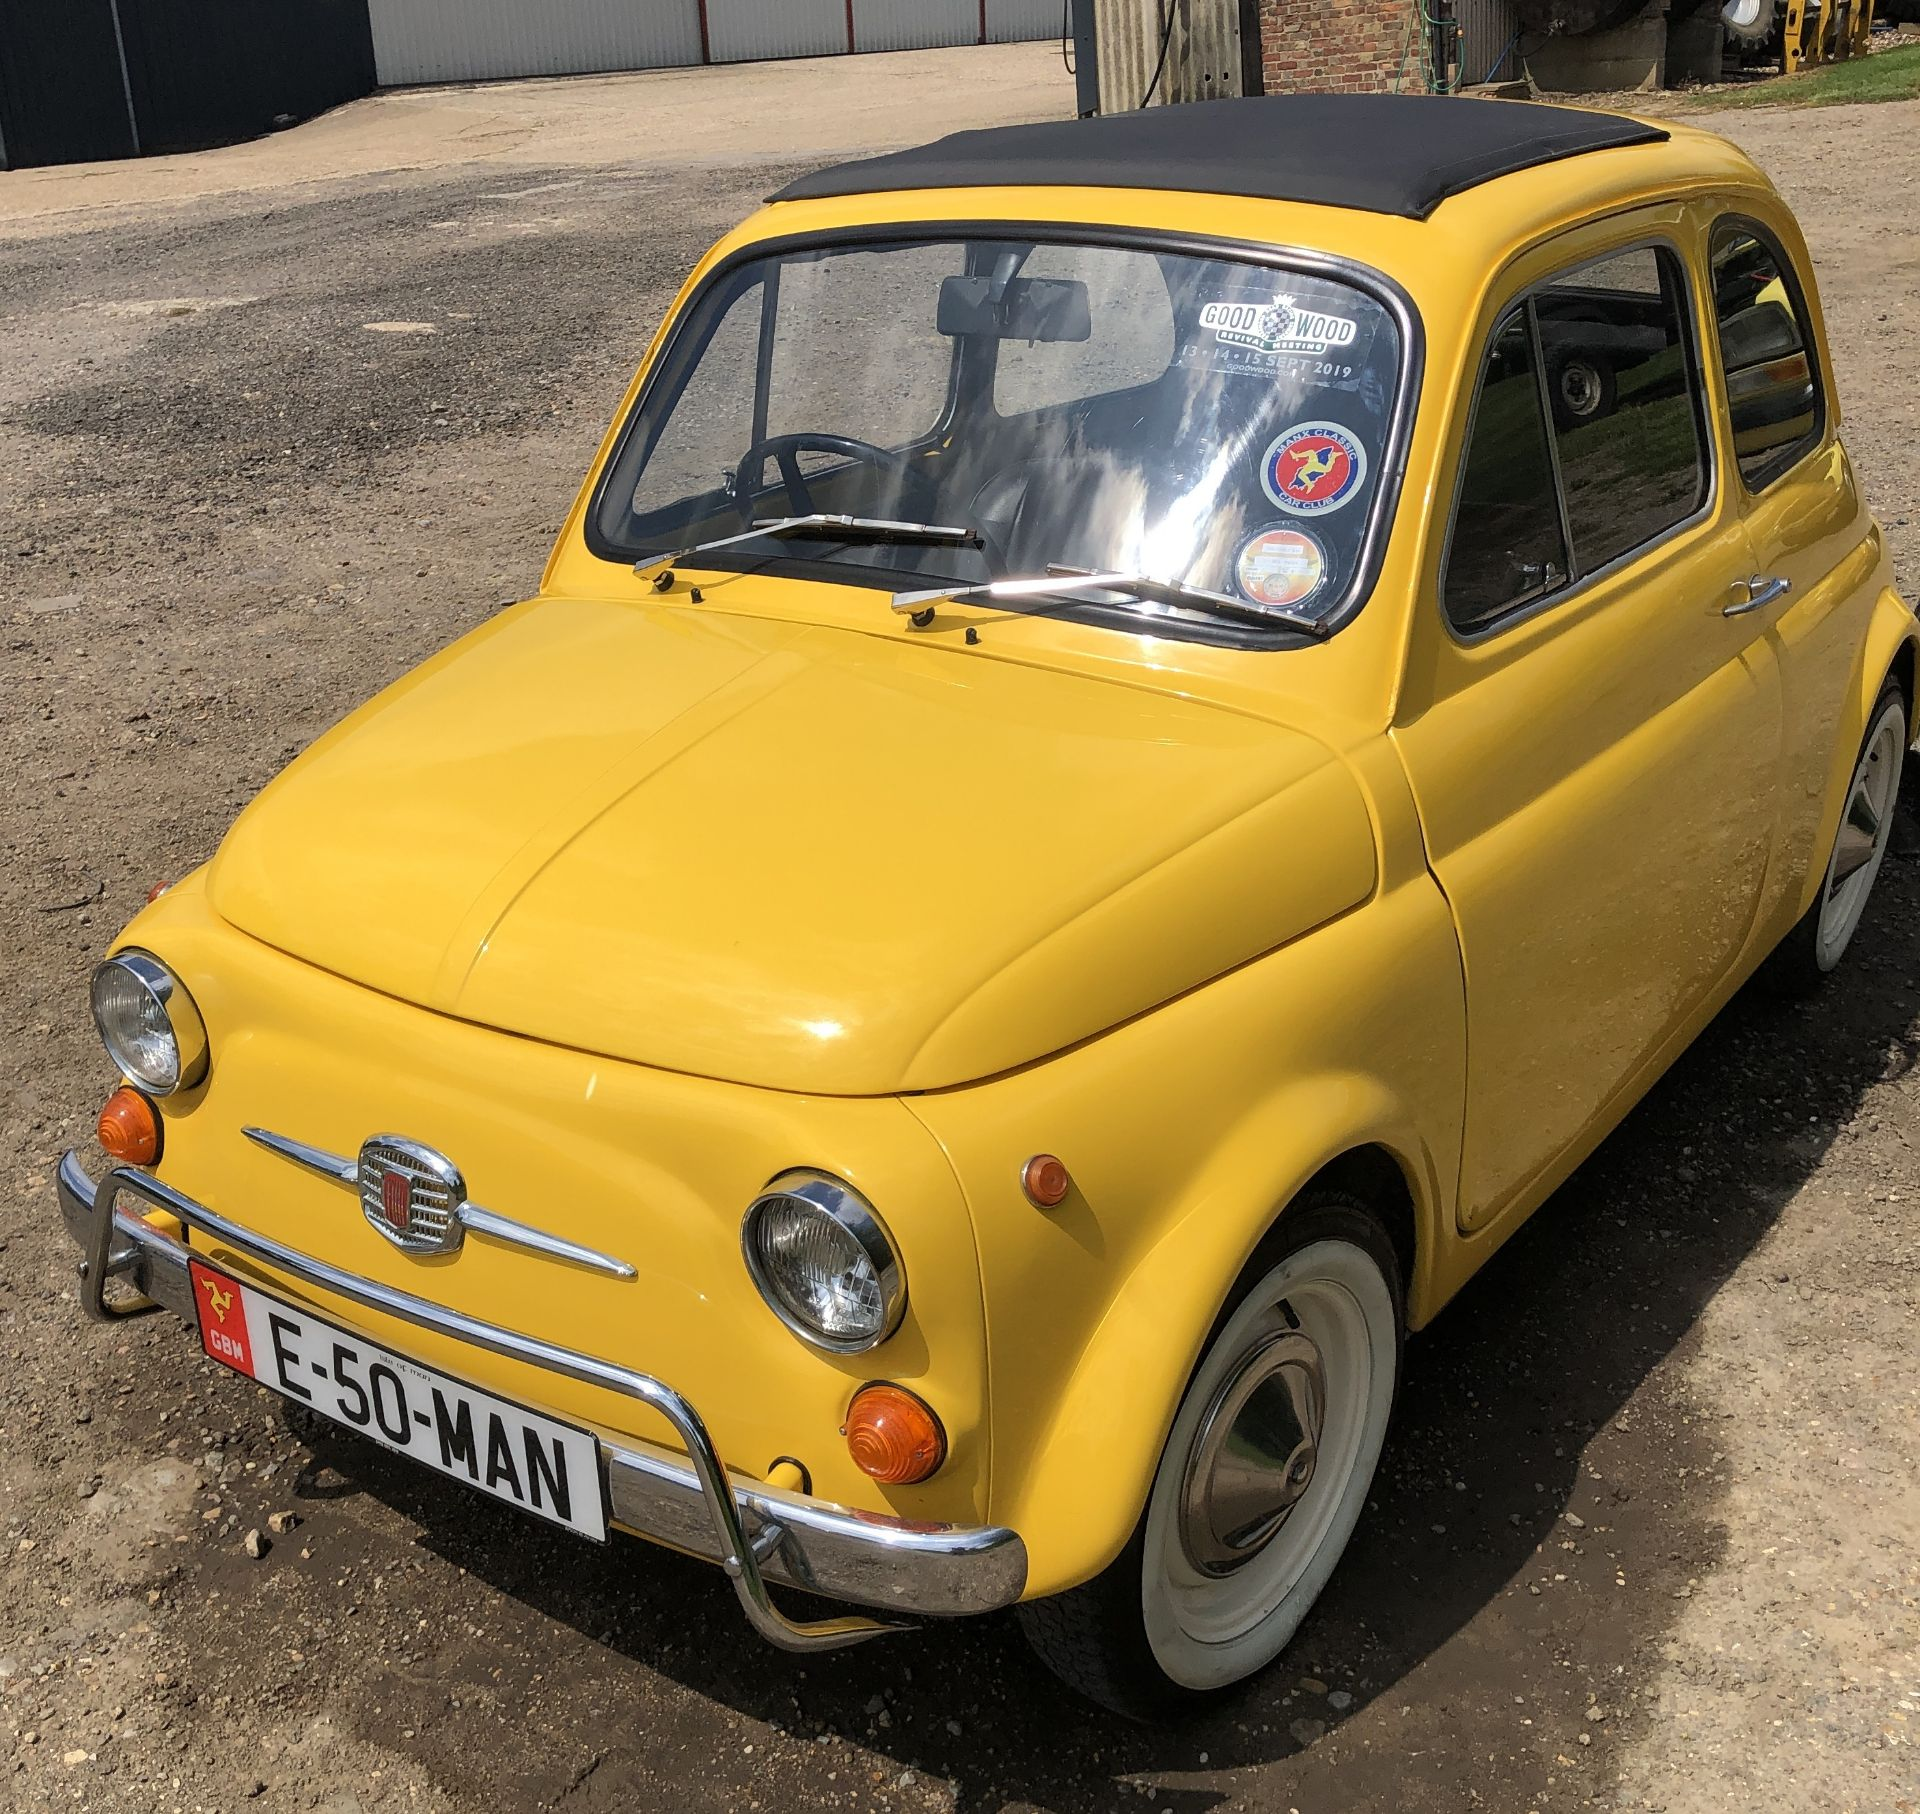 1972 Fiat 500 Saloon, Registration E-50-Man (IOM, Formally Registered as TGF 249L), First Registered - Image 9 of 34